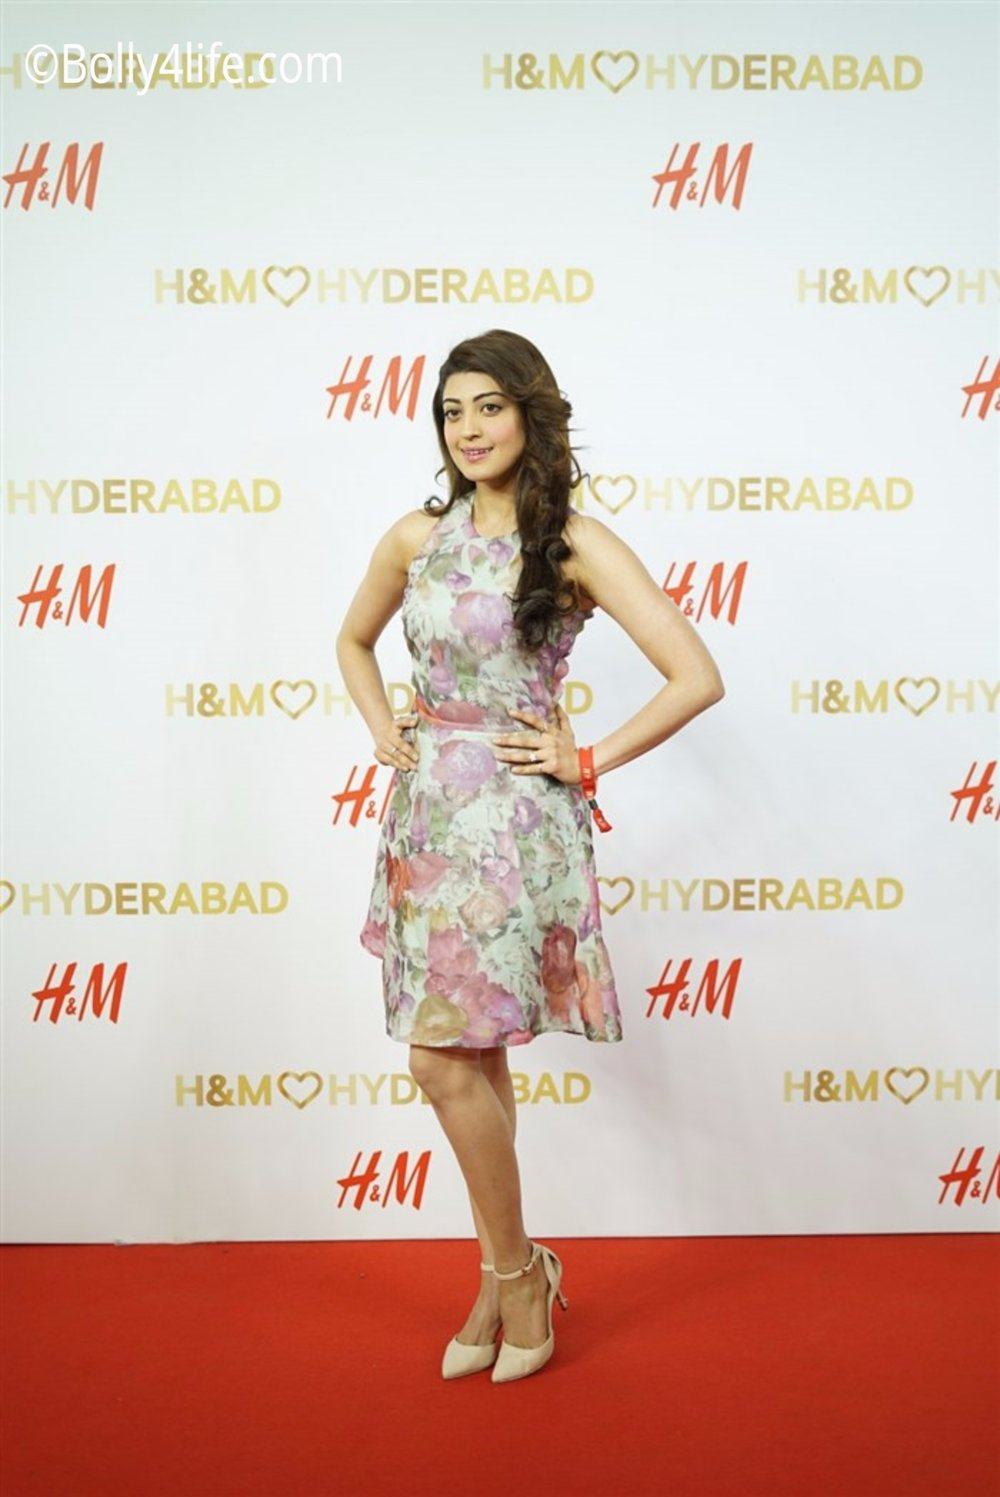 actress-hms-vip-party-inorbit-mall-hyderabad-1a004fe.jpg